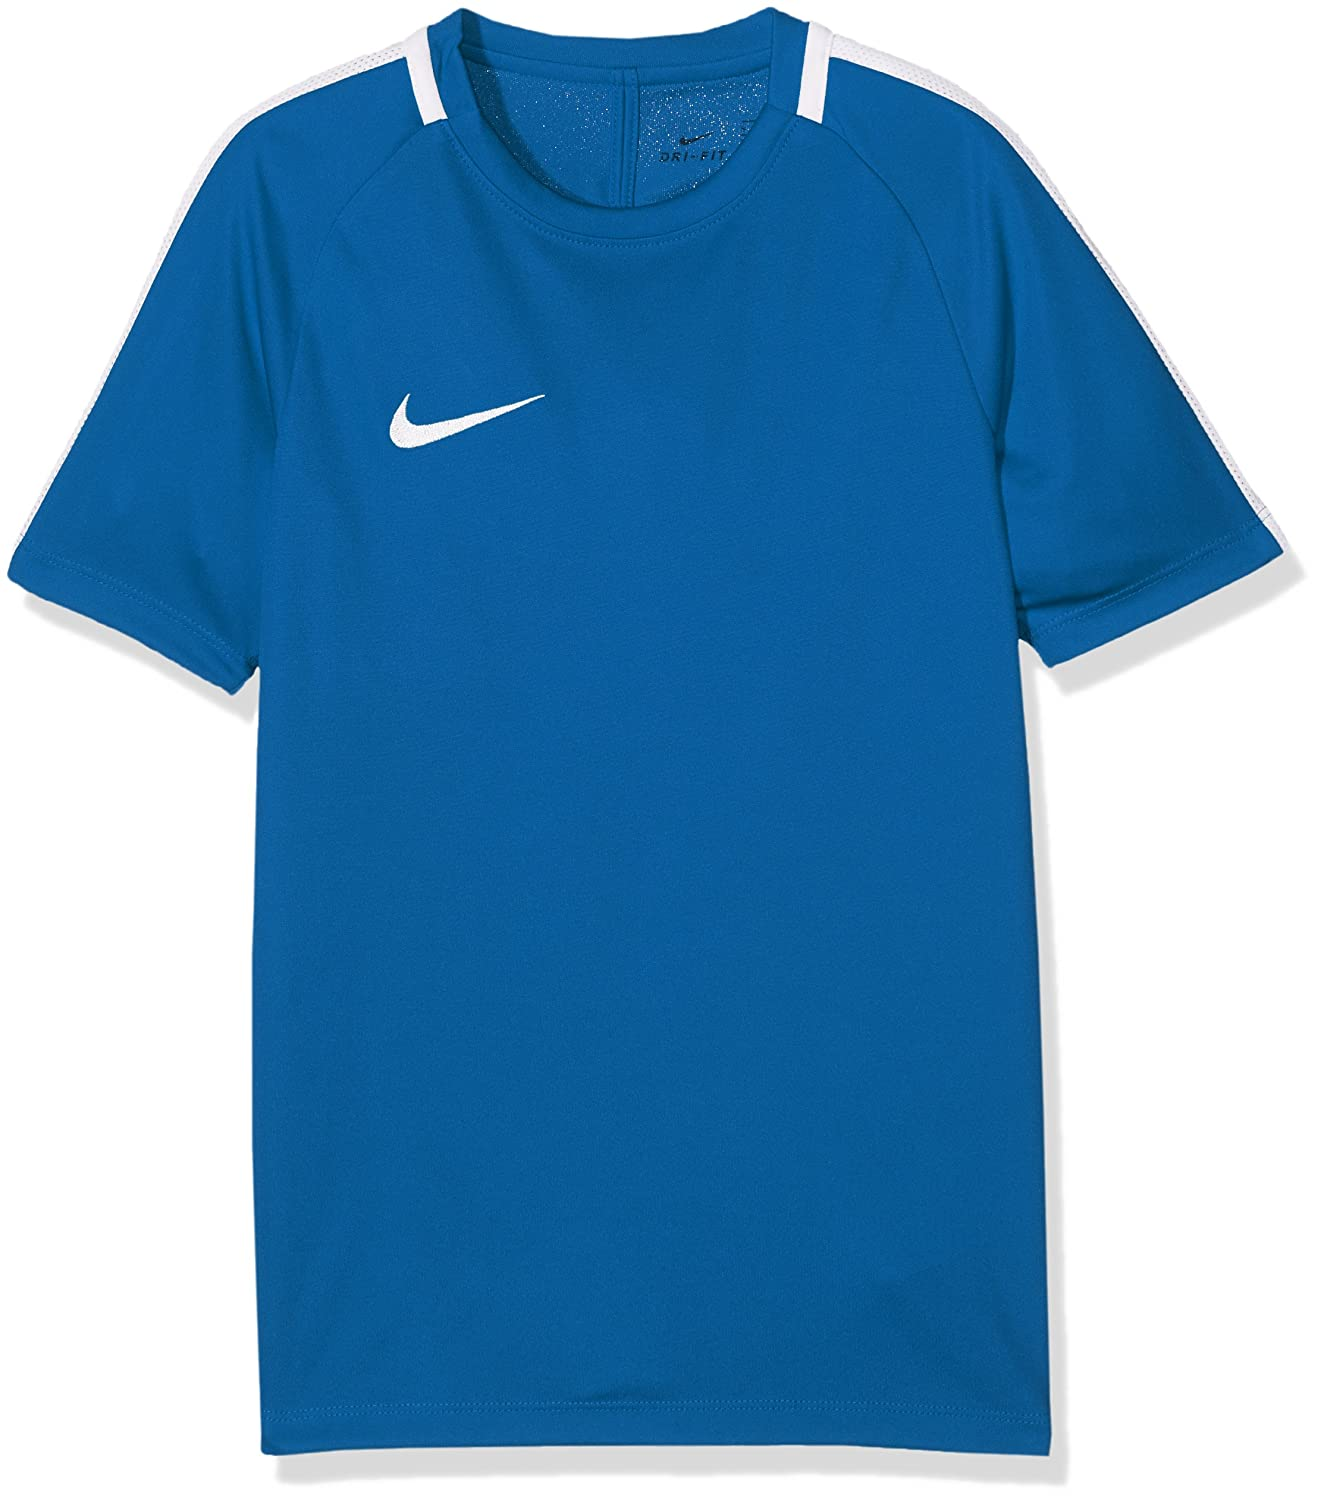 85de12152 Amazon.com : Nike Kids Youth Dry Academy Tops (Industrial Blue, X-Large) :  Sports & Outdoors